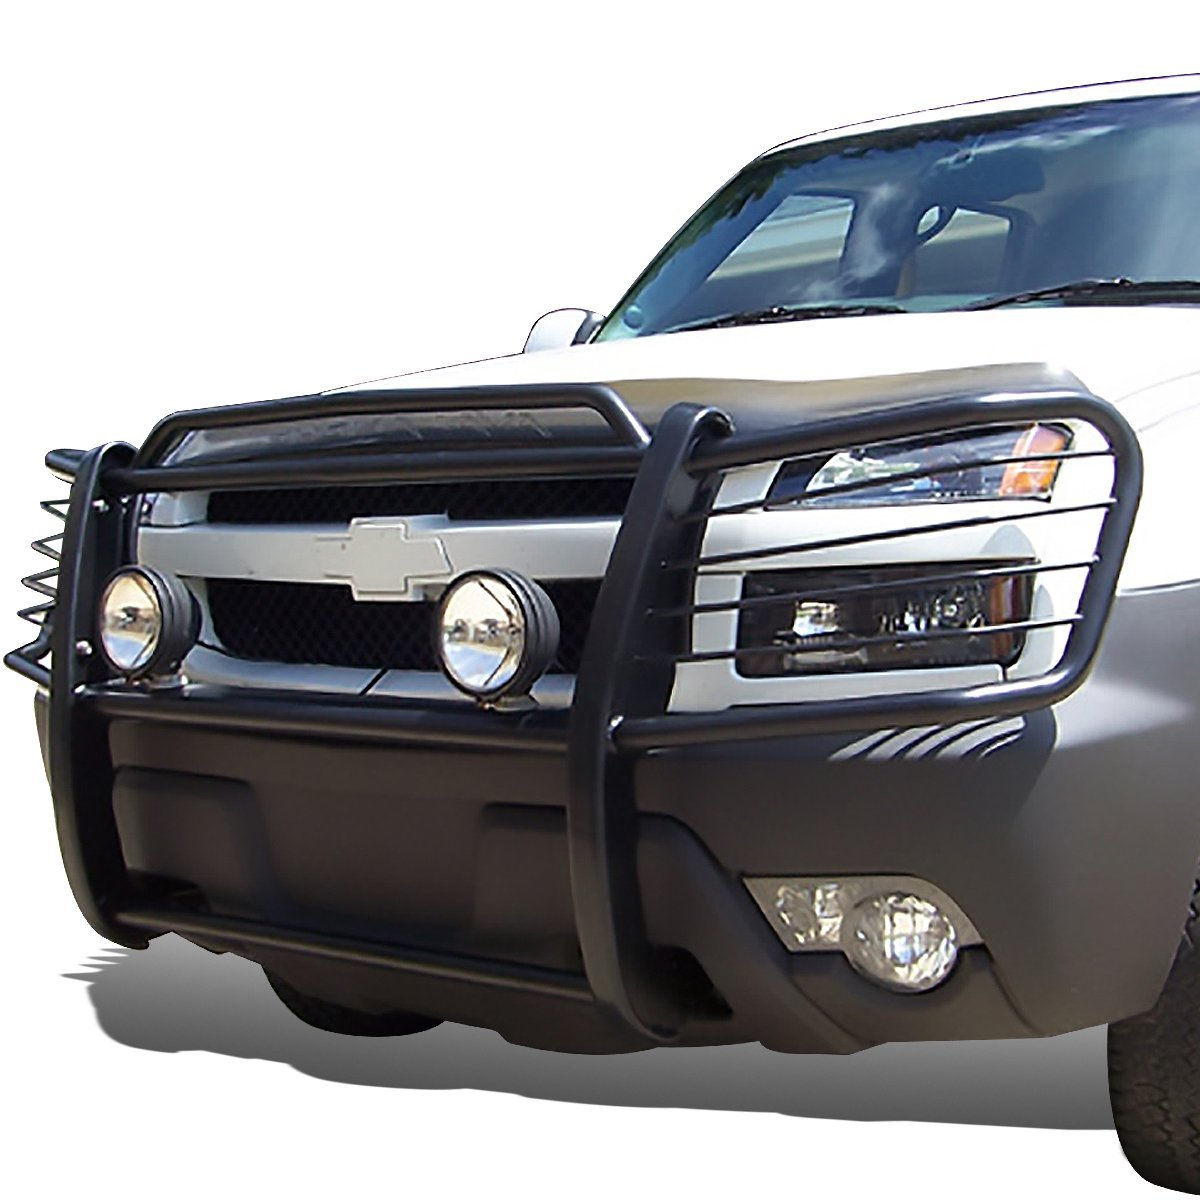 02 06 chevy avalanche with cladding front bumper protector brush grille guard black